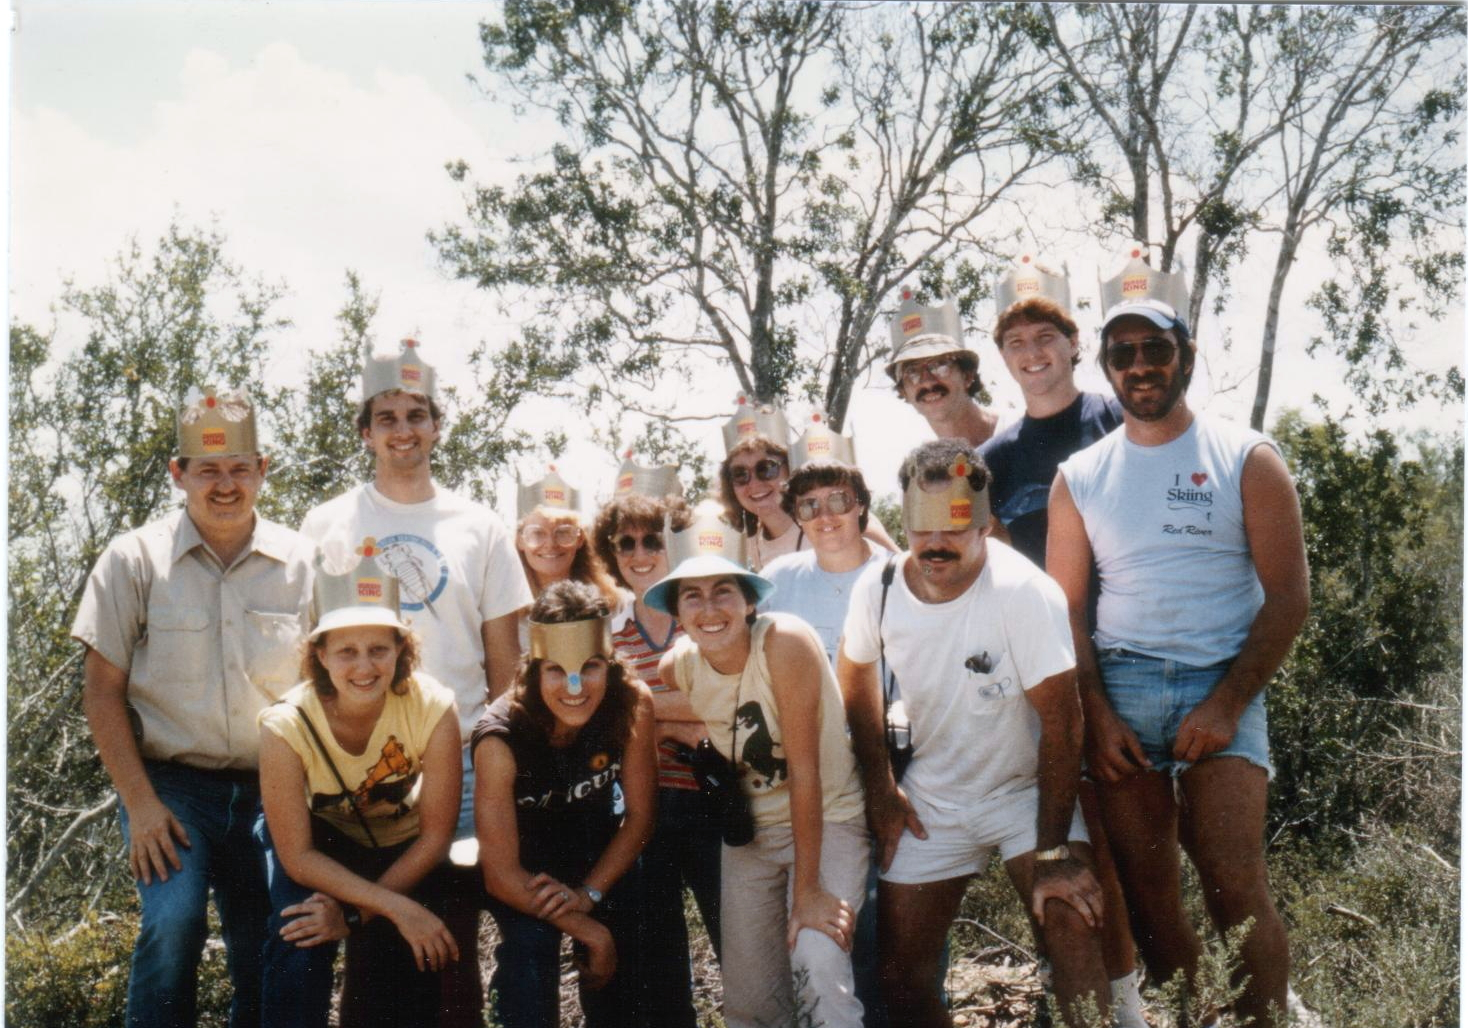 During his time at Texas State University, Dr. Schneider led field trips to the Rio Grande region of Texas to study rare and endangered plants, including this 1980 class.